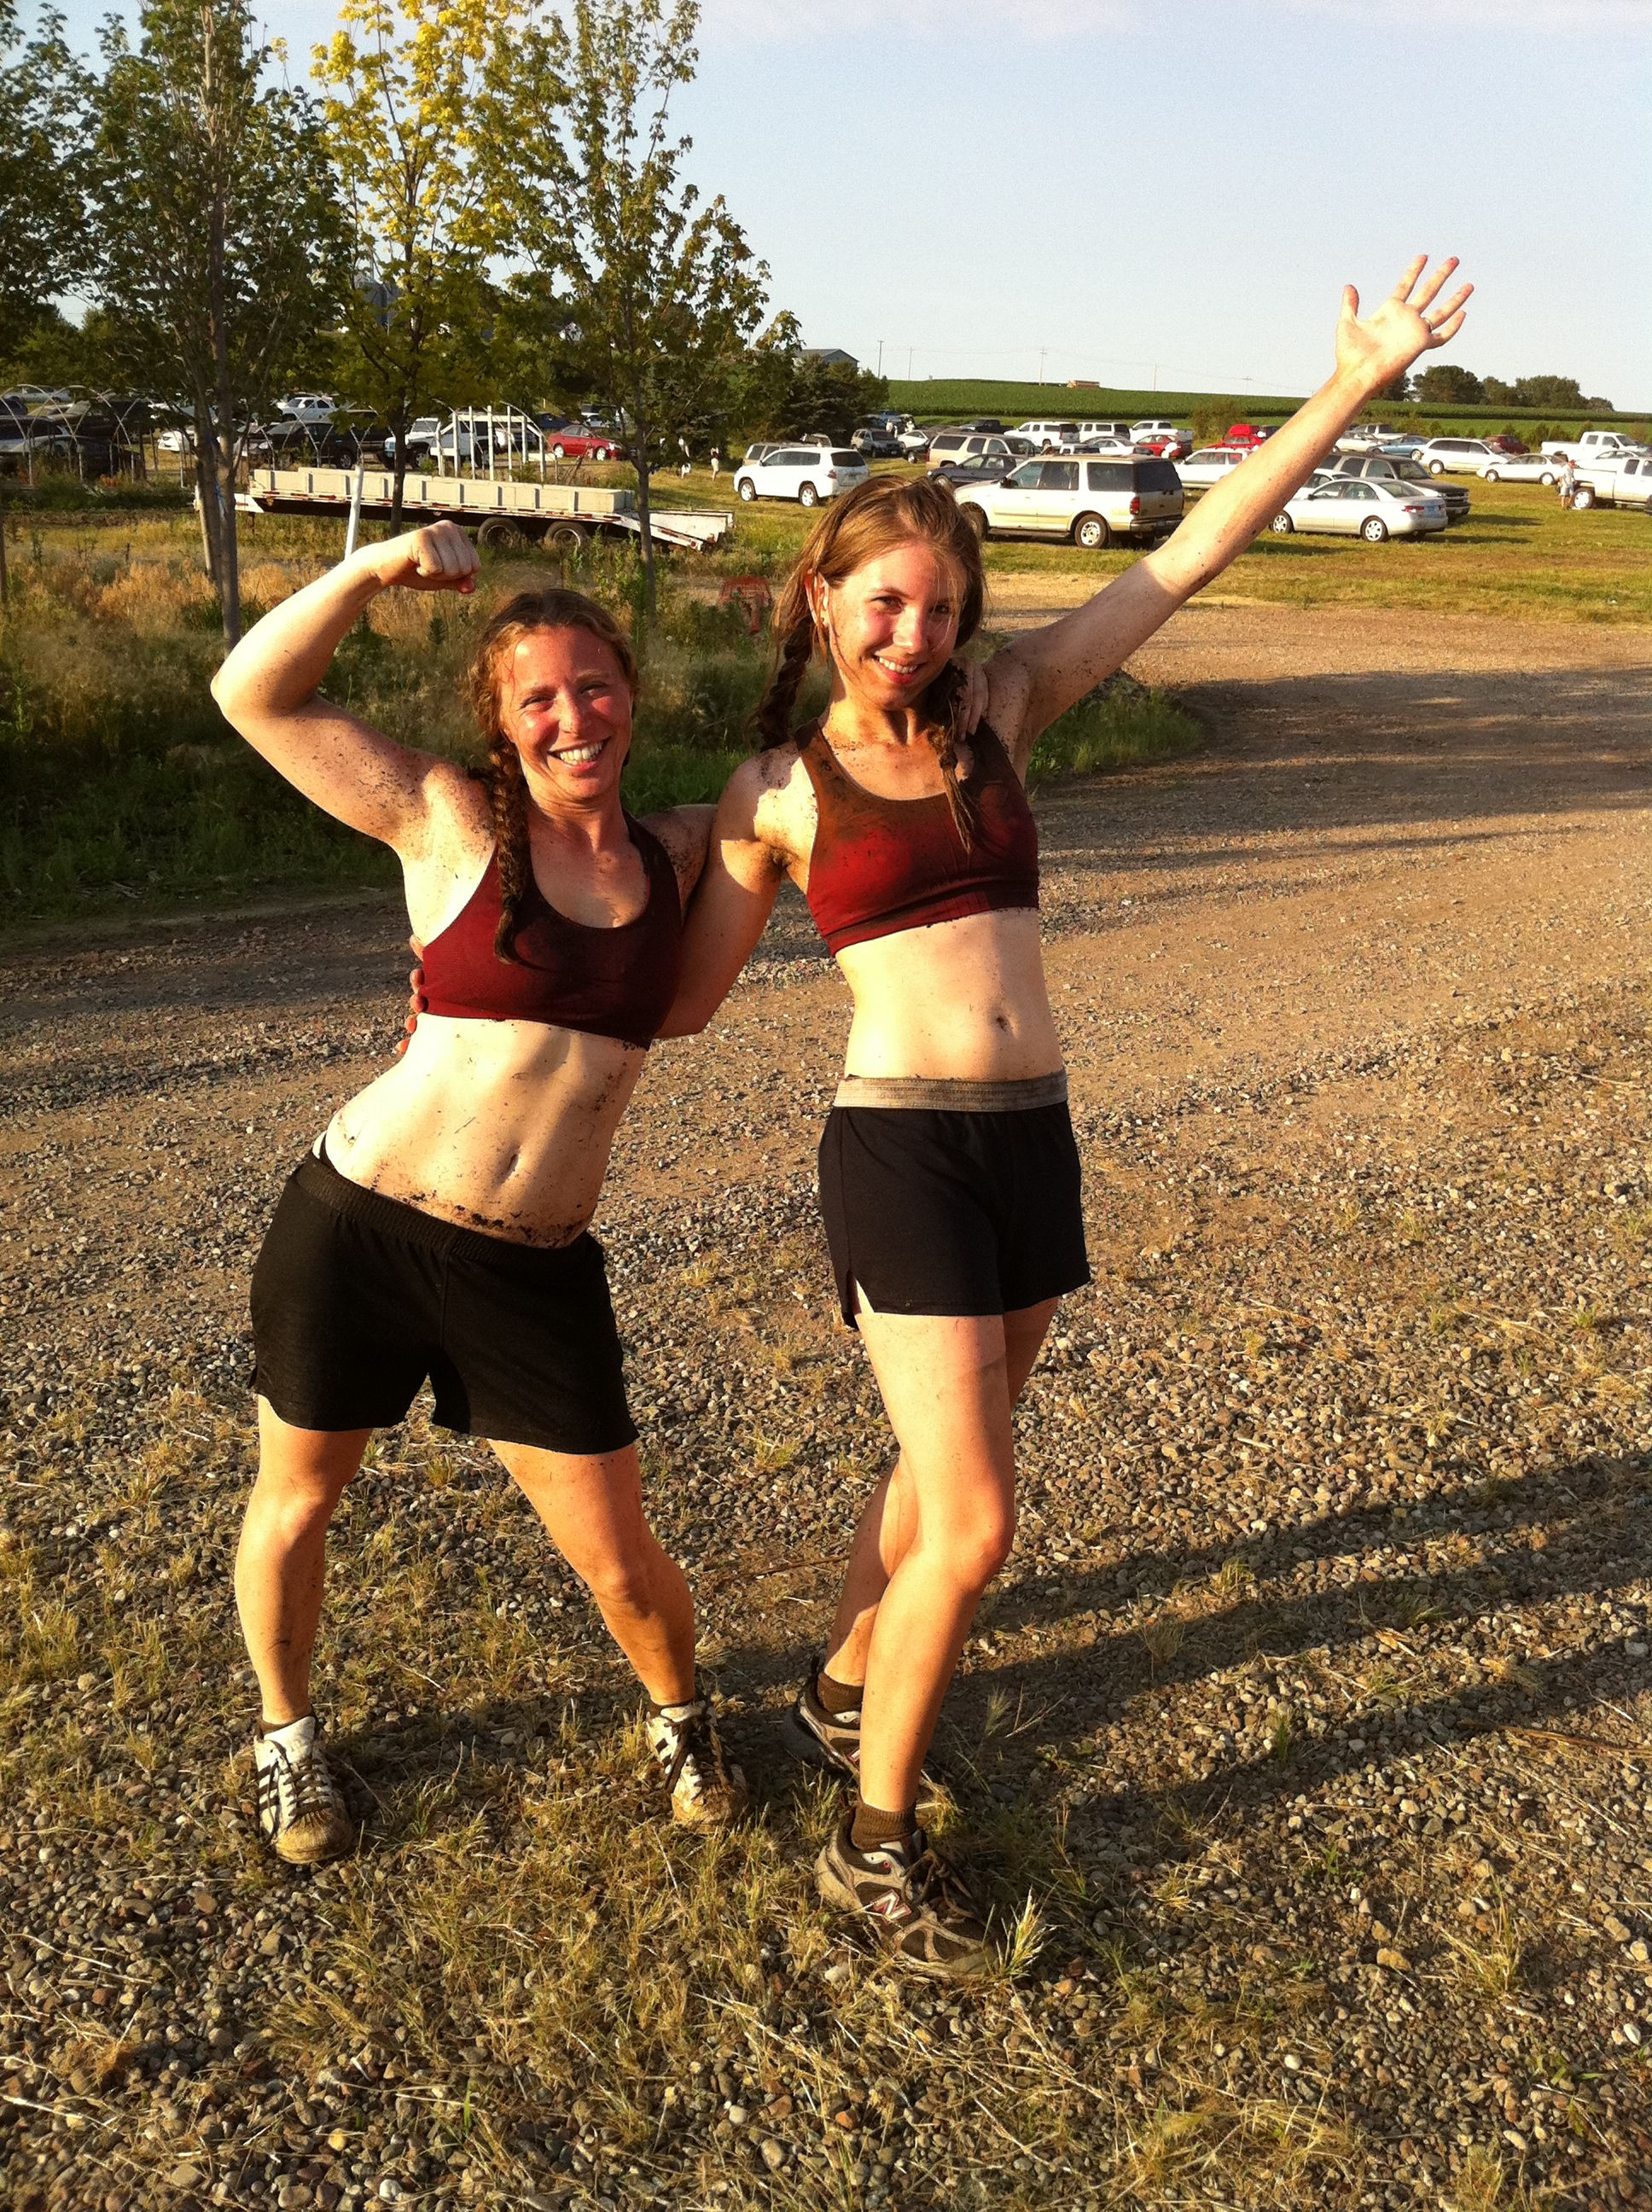 Angie & I show off our slightly less muddy muscles......we rocked the Warrior Dash at Afton Alps June 2012 :D